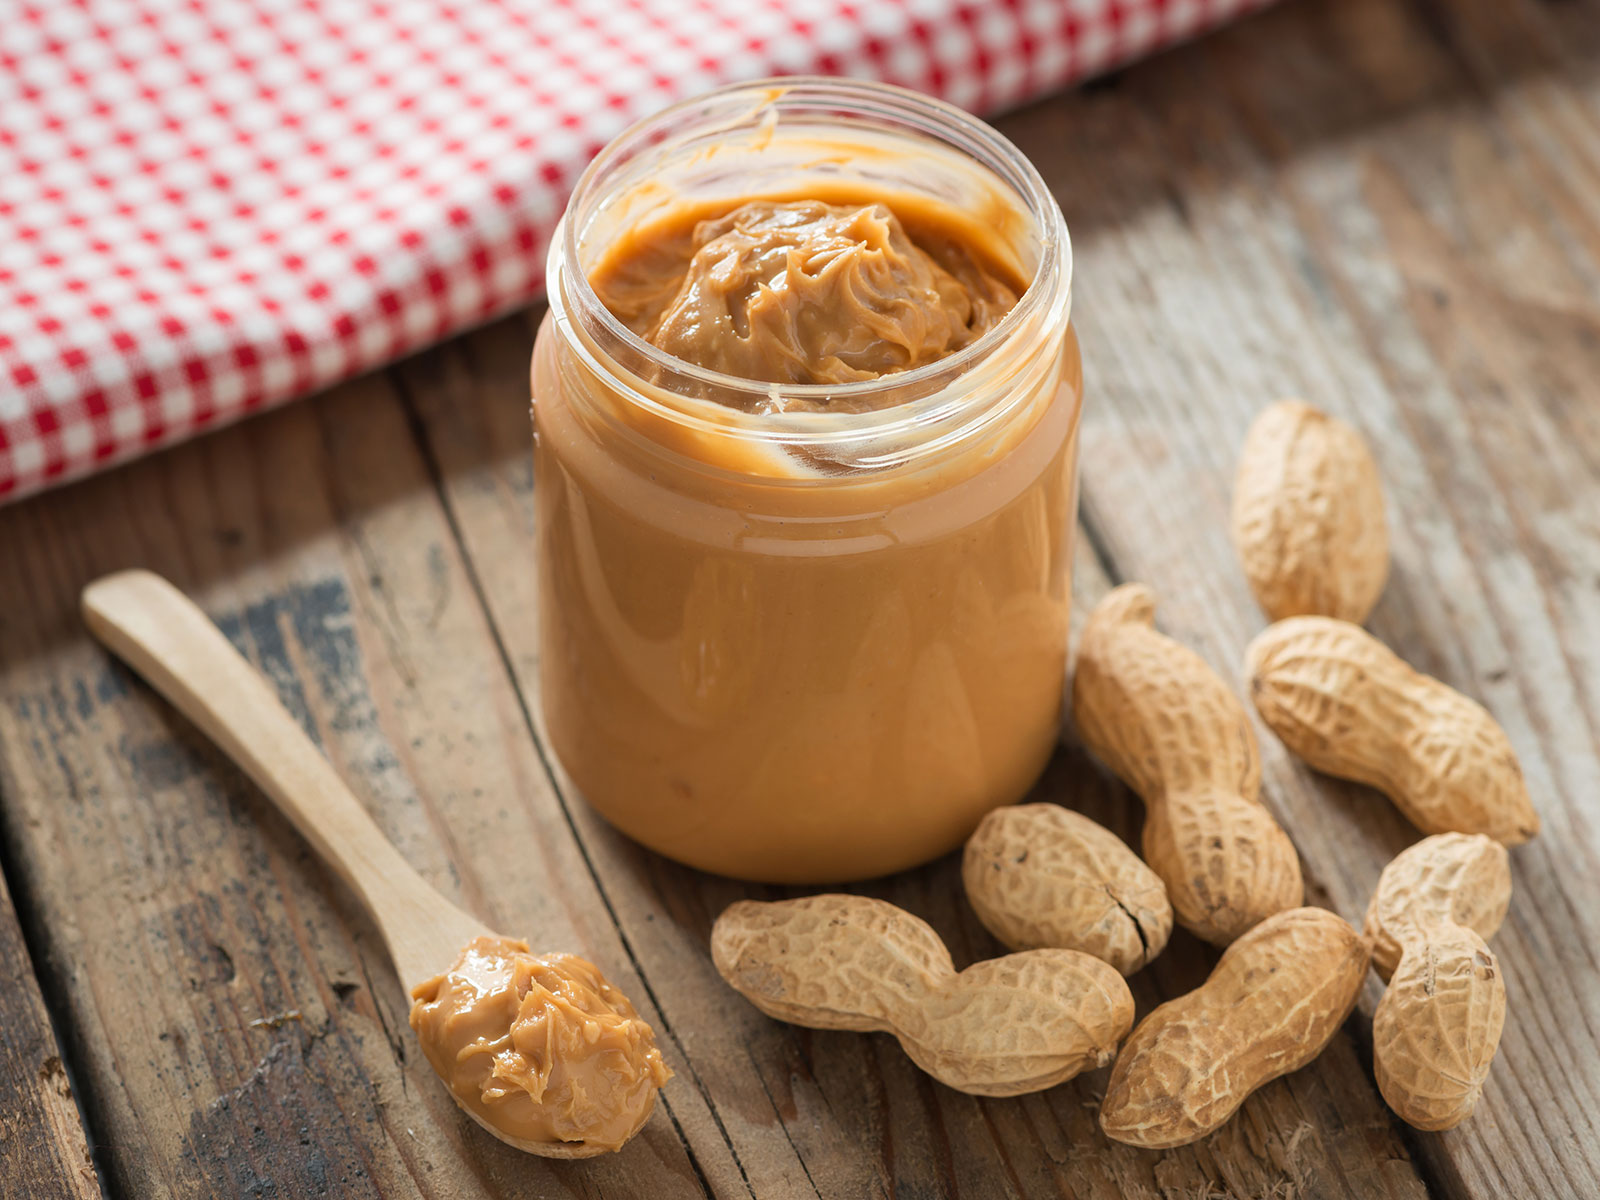 peanut allergies developed even in adulthood